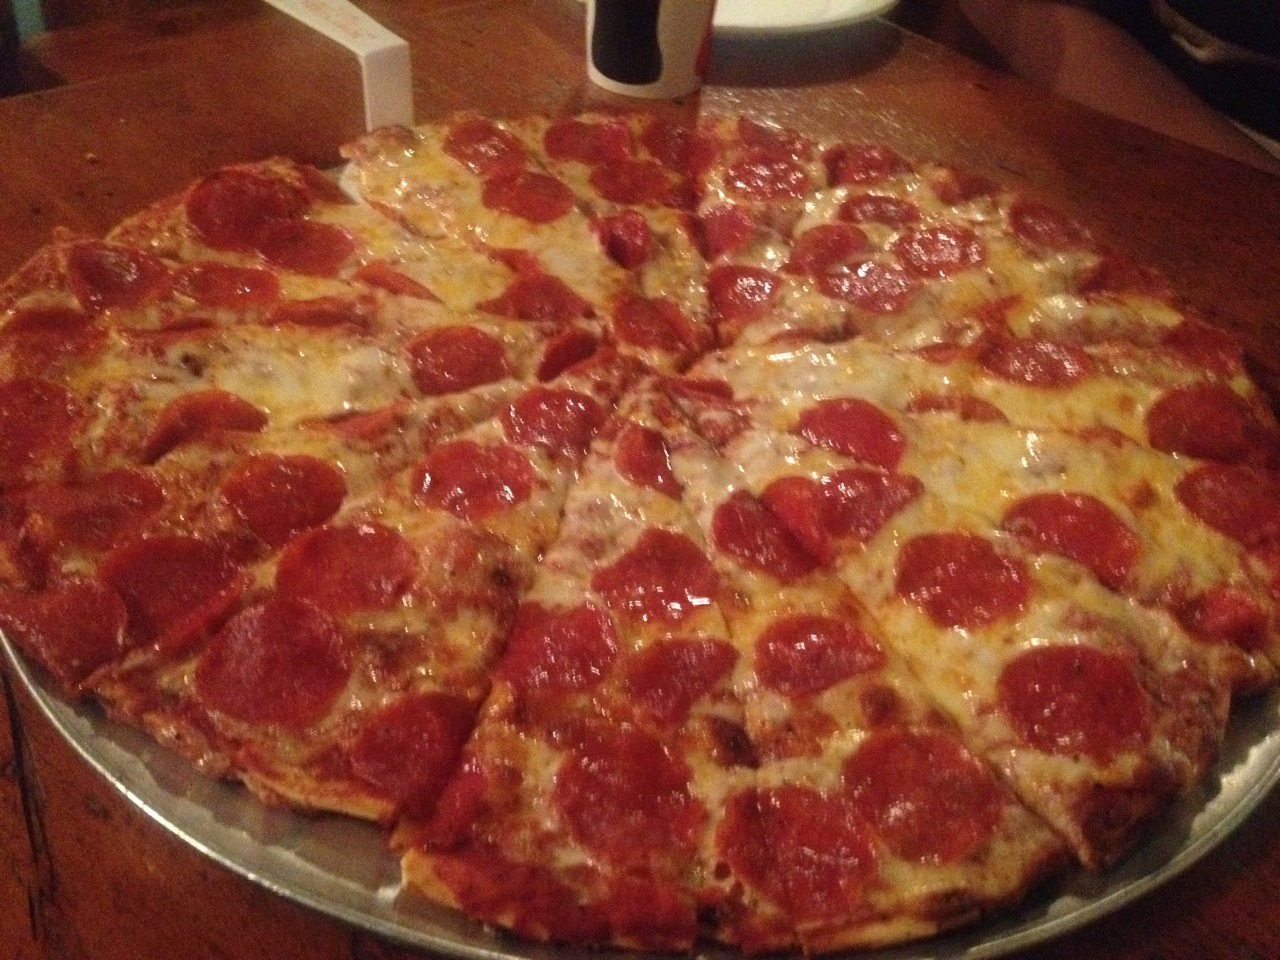 Pepperoni Pizza at Hubby's – January 23 2015